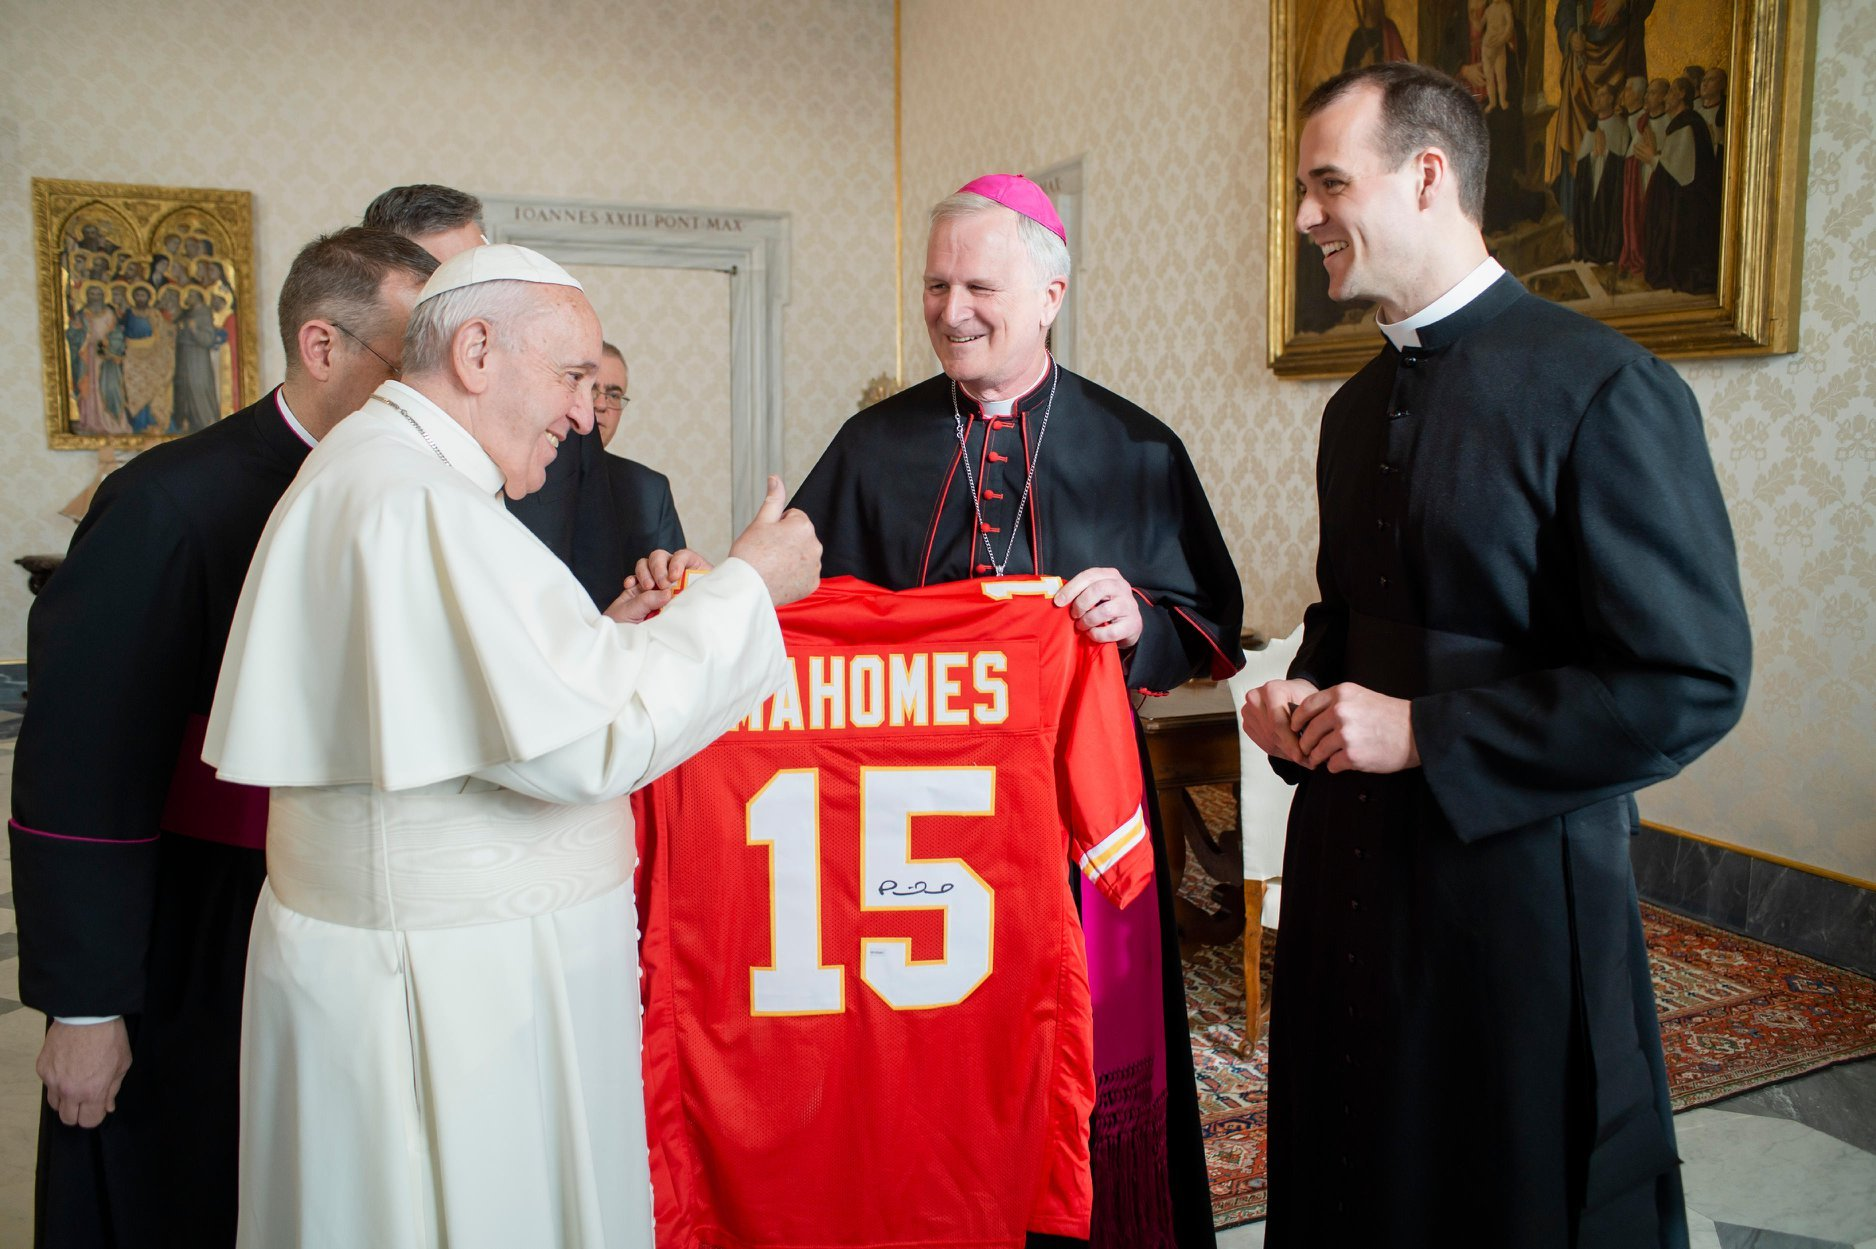 Picture of the Pope getting a Mahomes Jersey